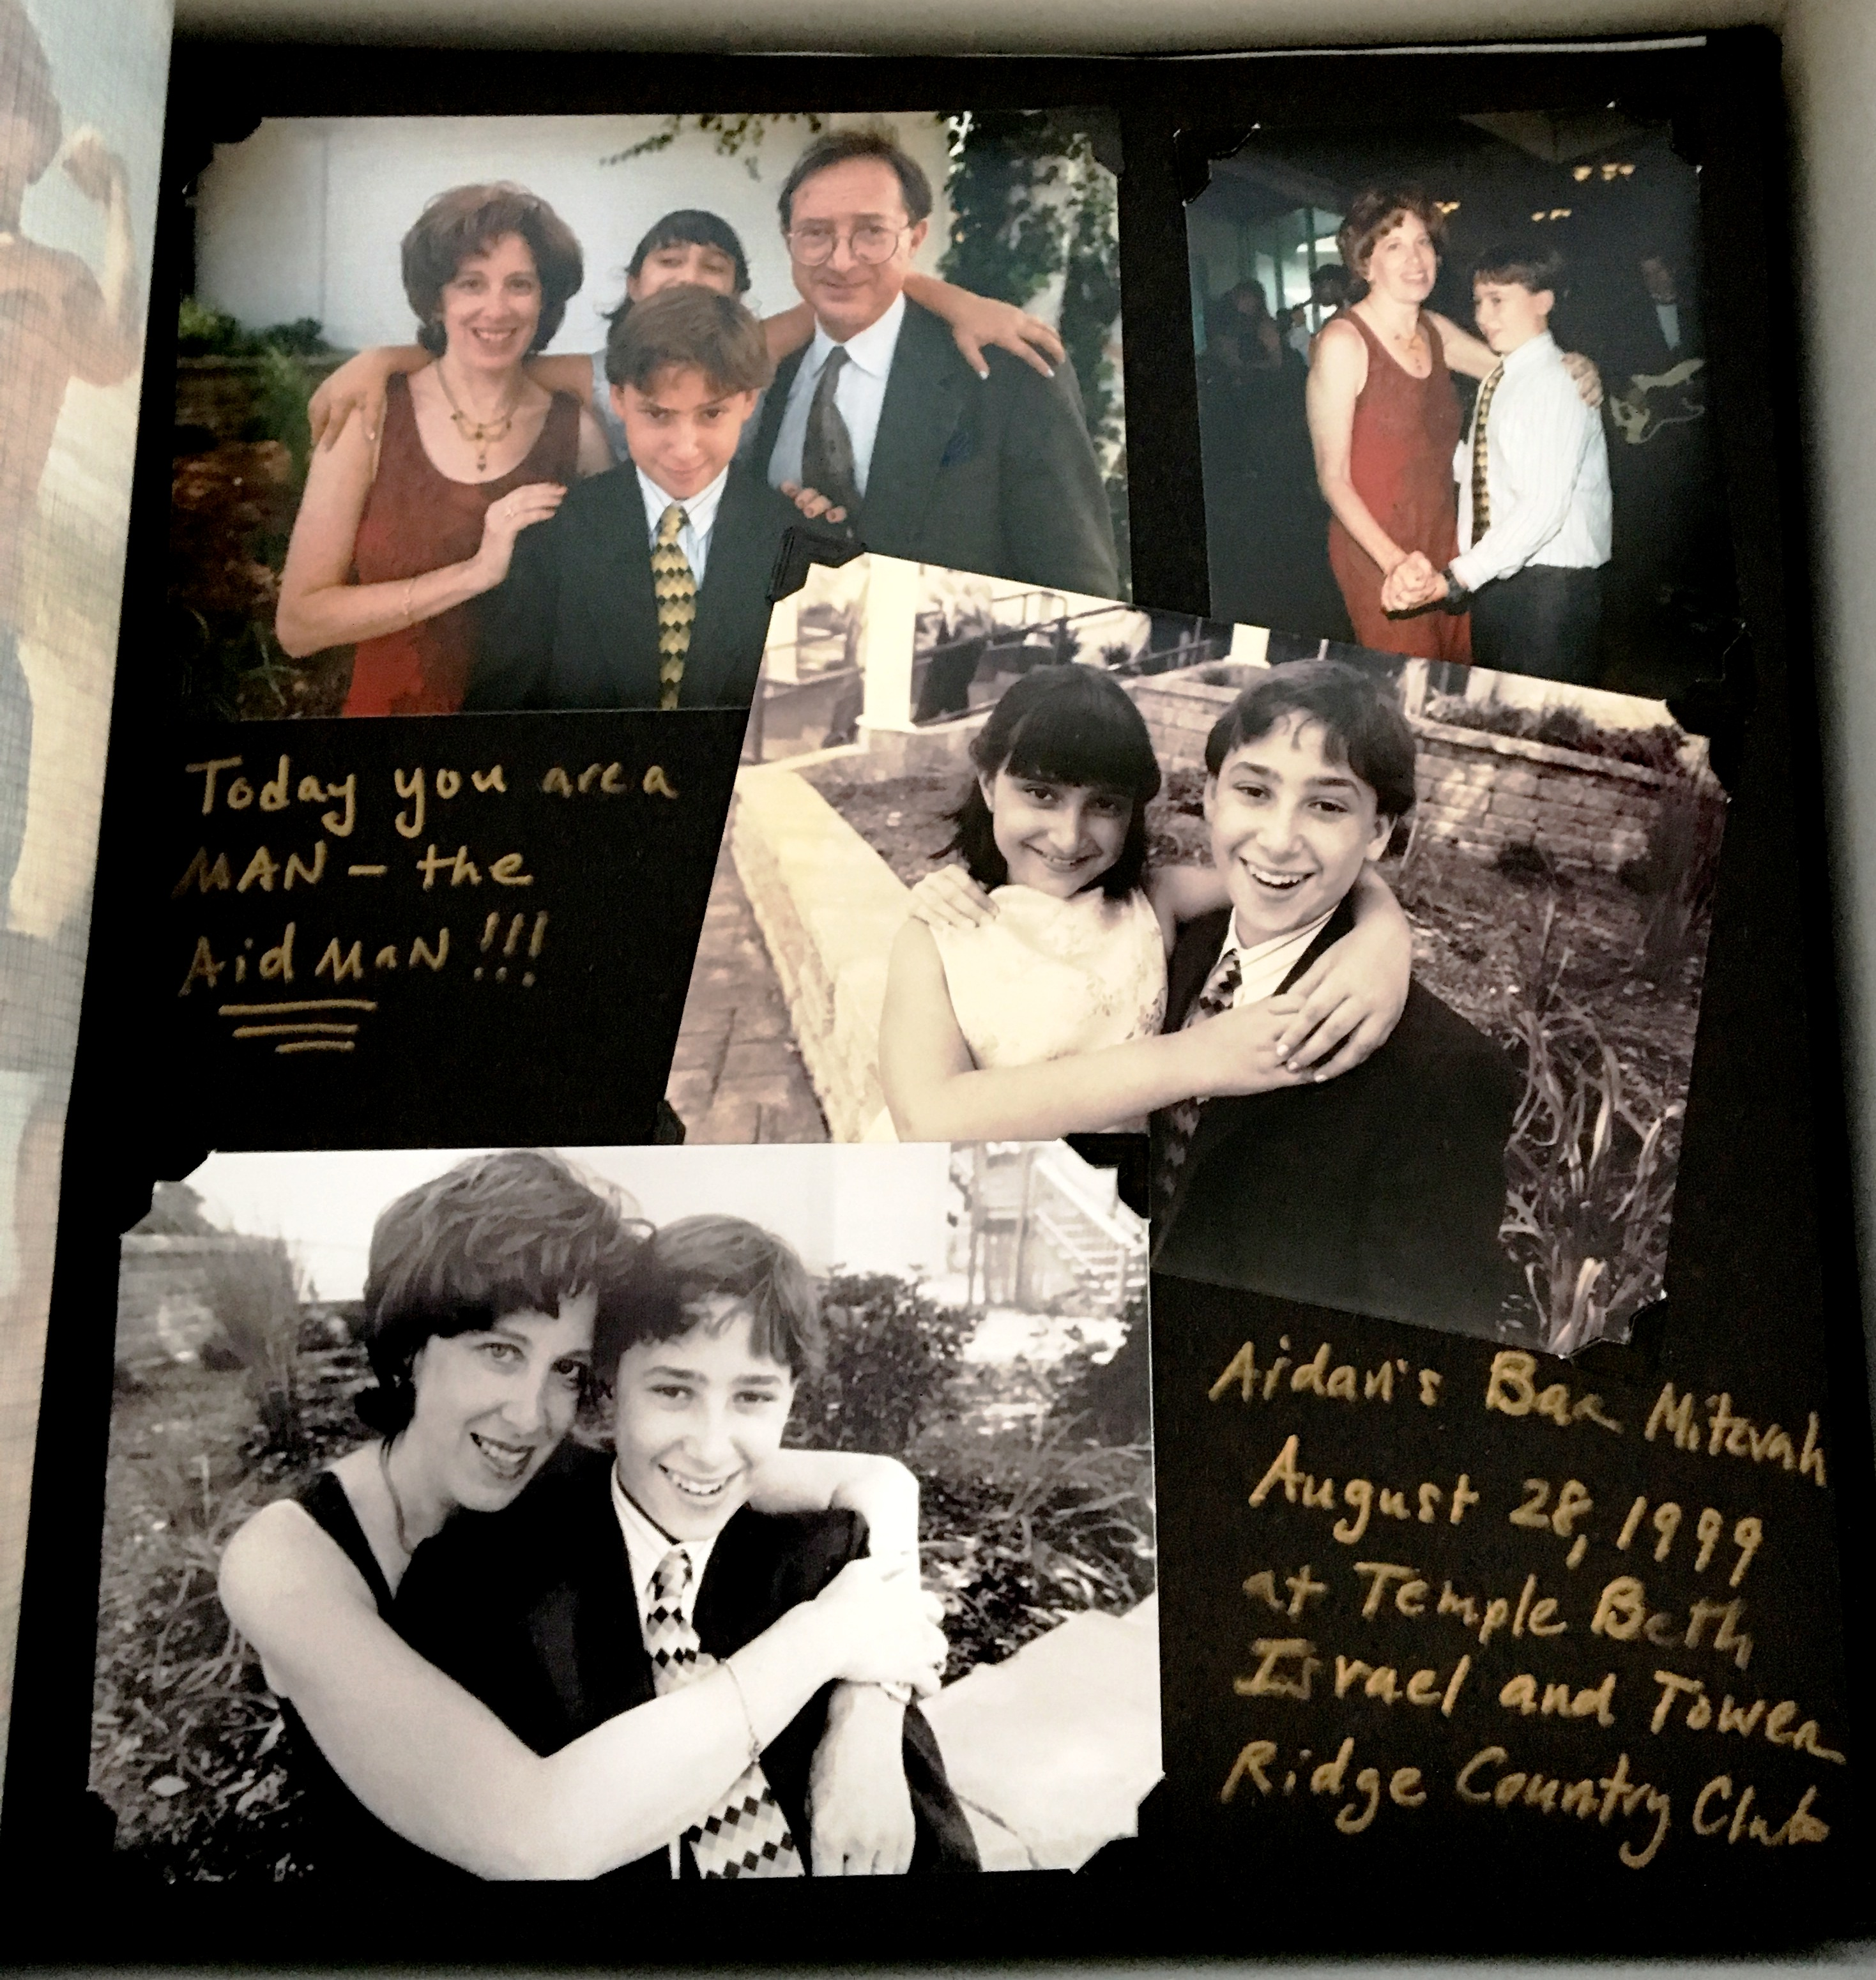 Album page with Aidan's bar mitzvah.JPG